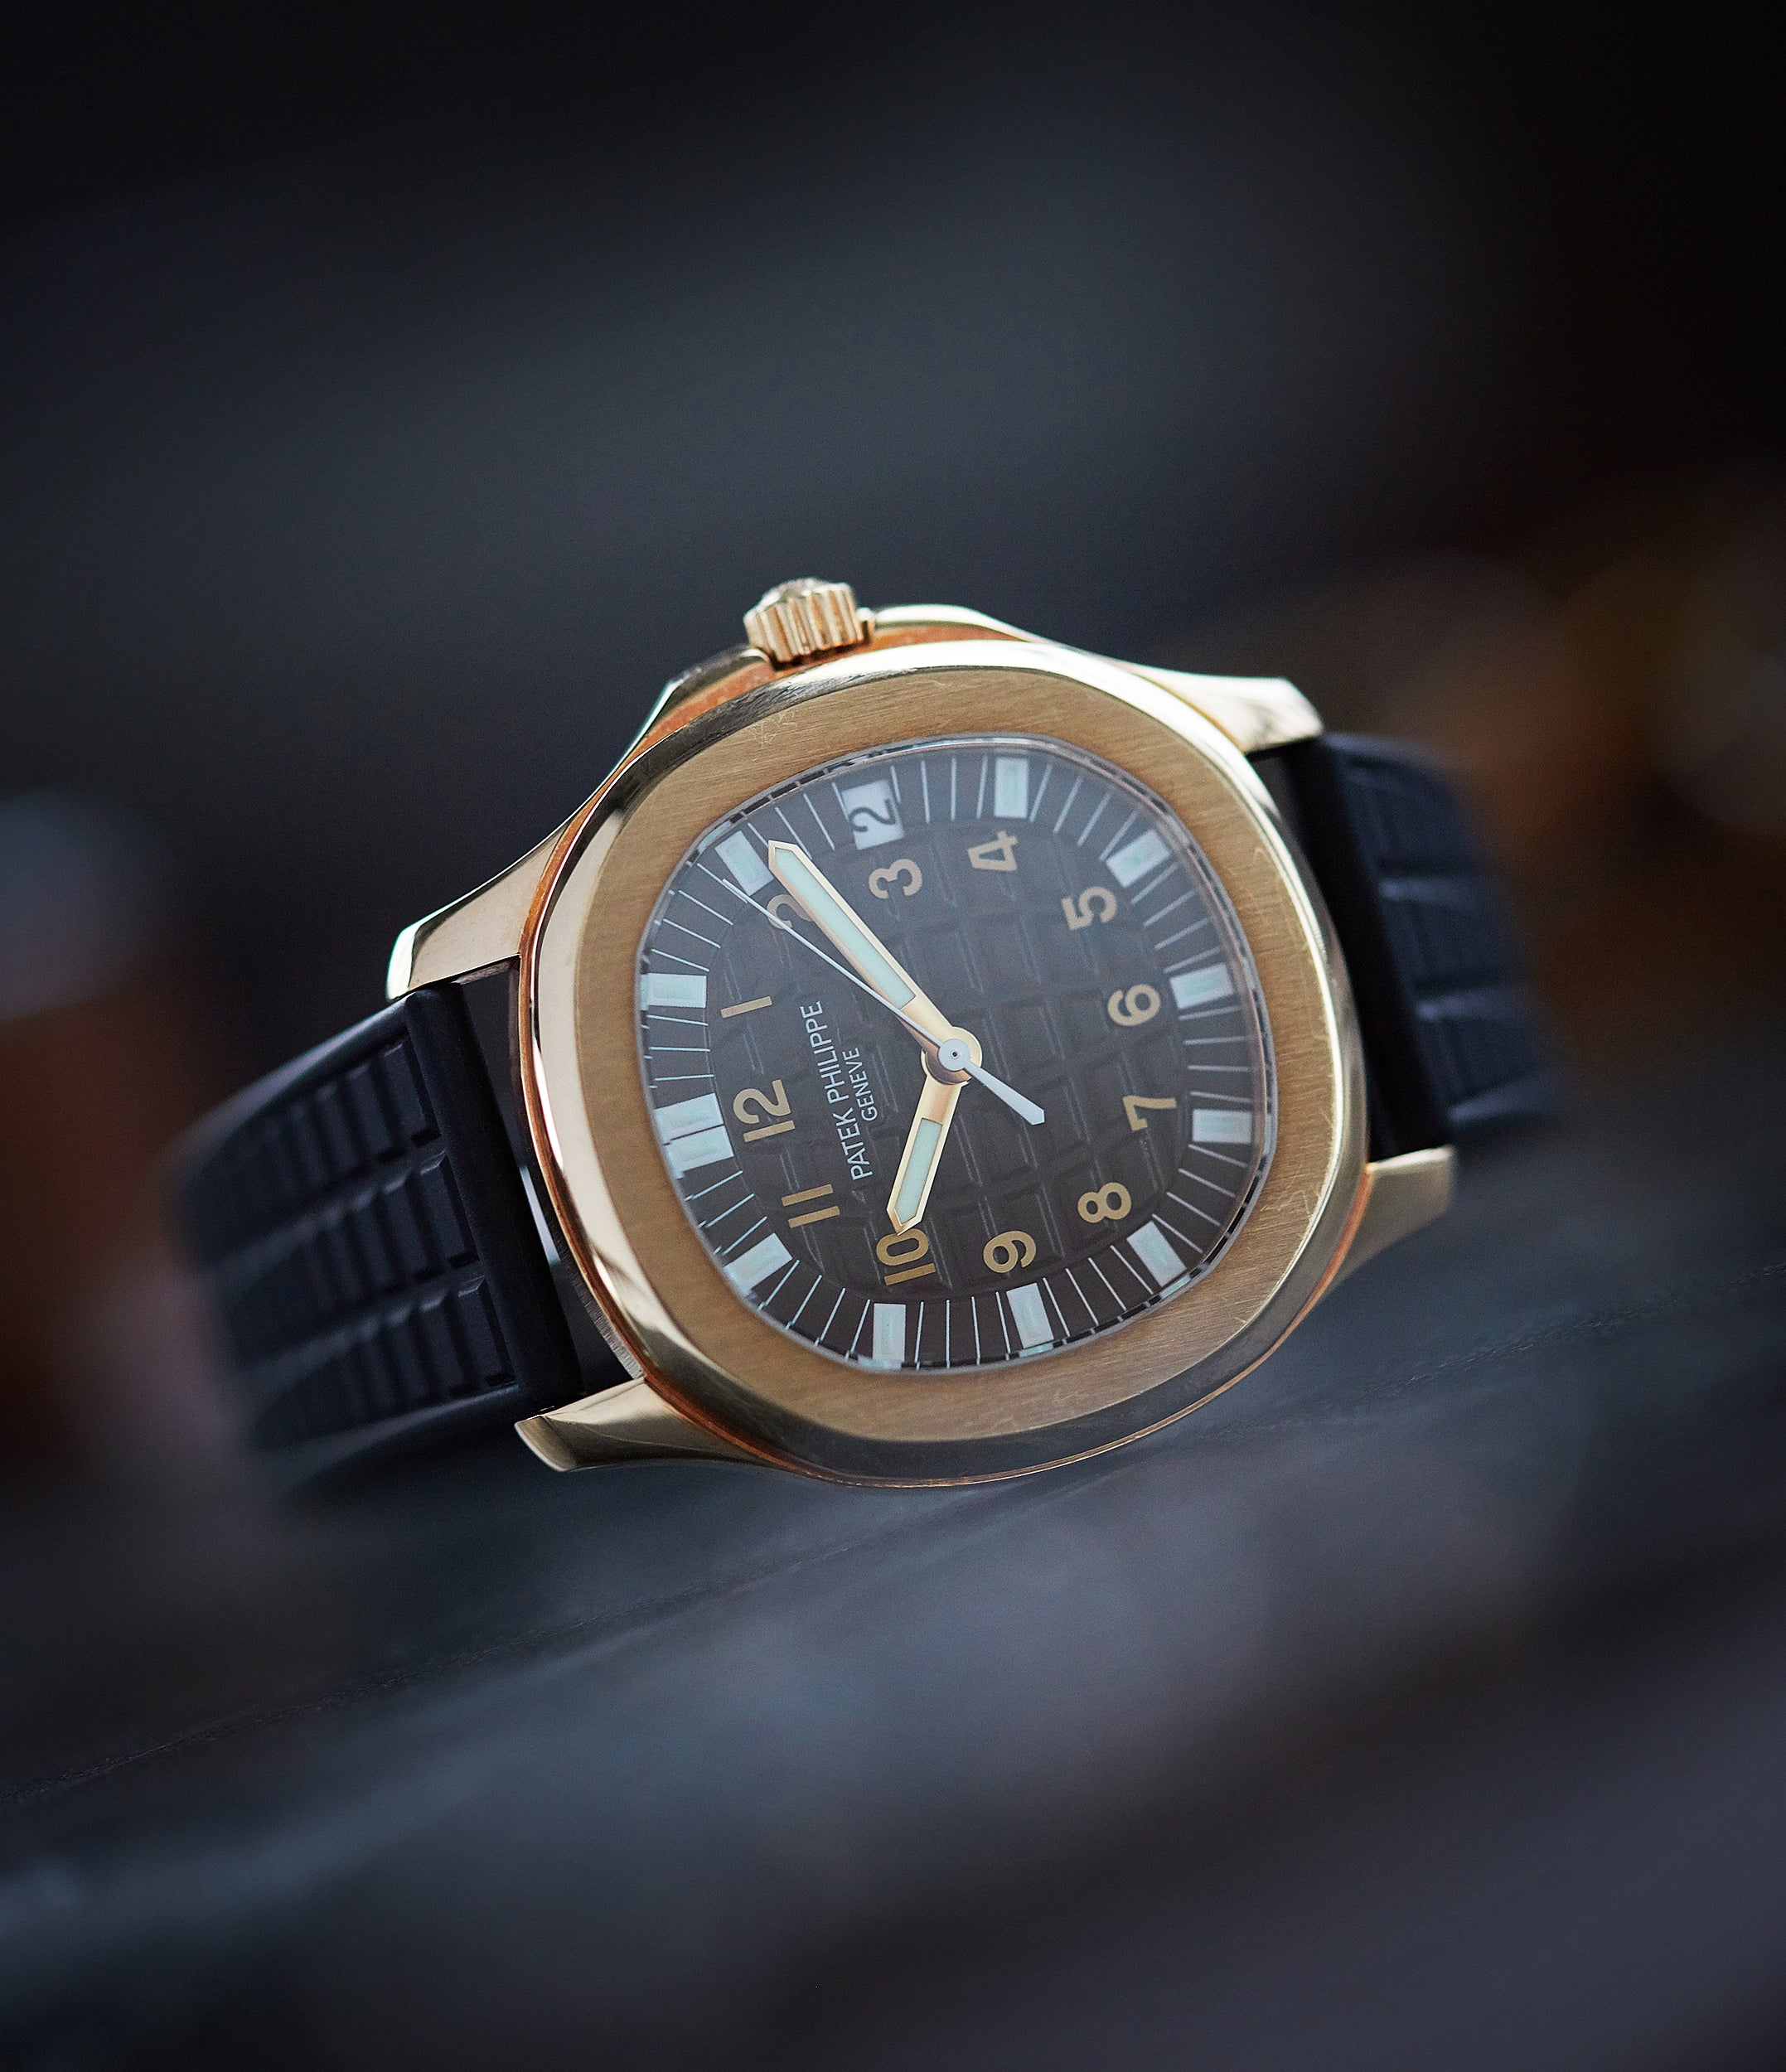 shop Patek Philippe Aquanaut 5065J yellow gold luxury sport watch for sale online at A Collected Man London UK specialist of rare watches